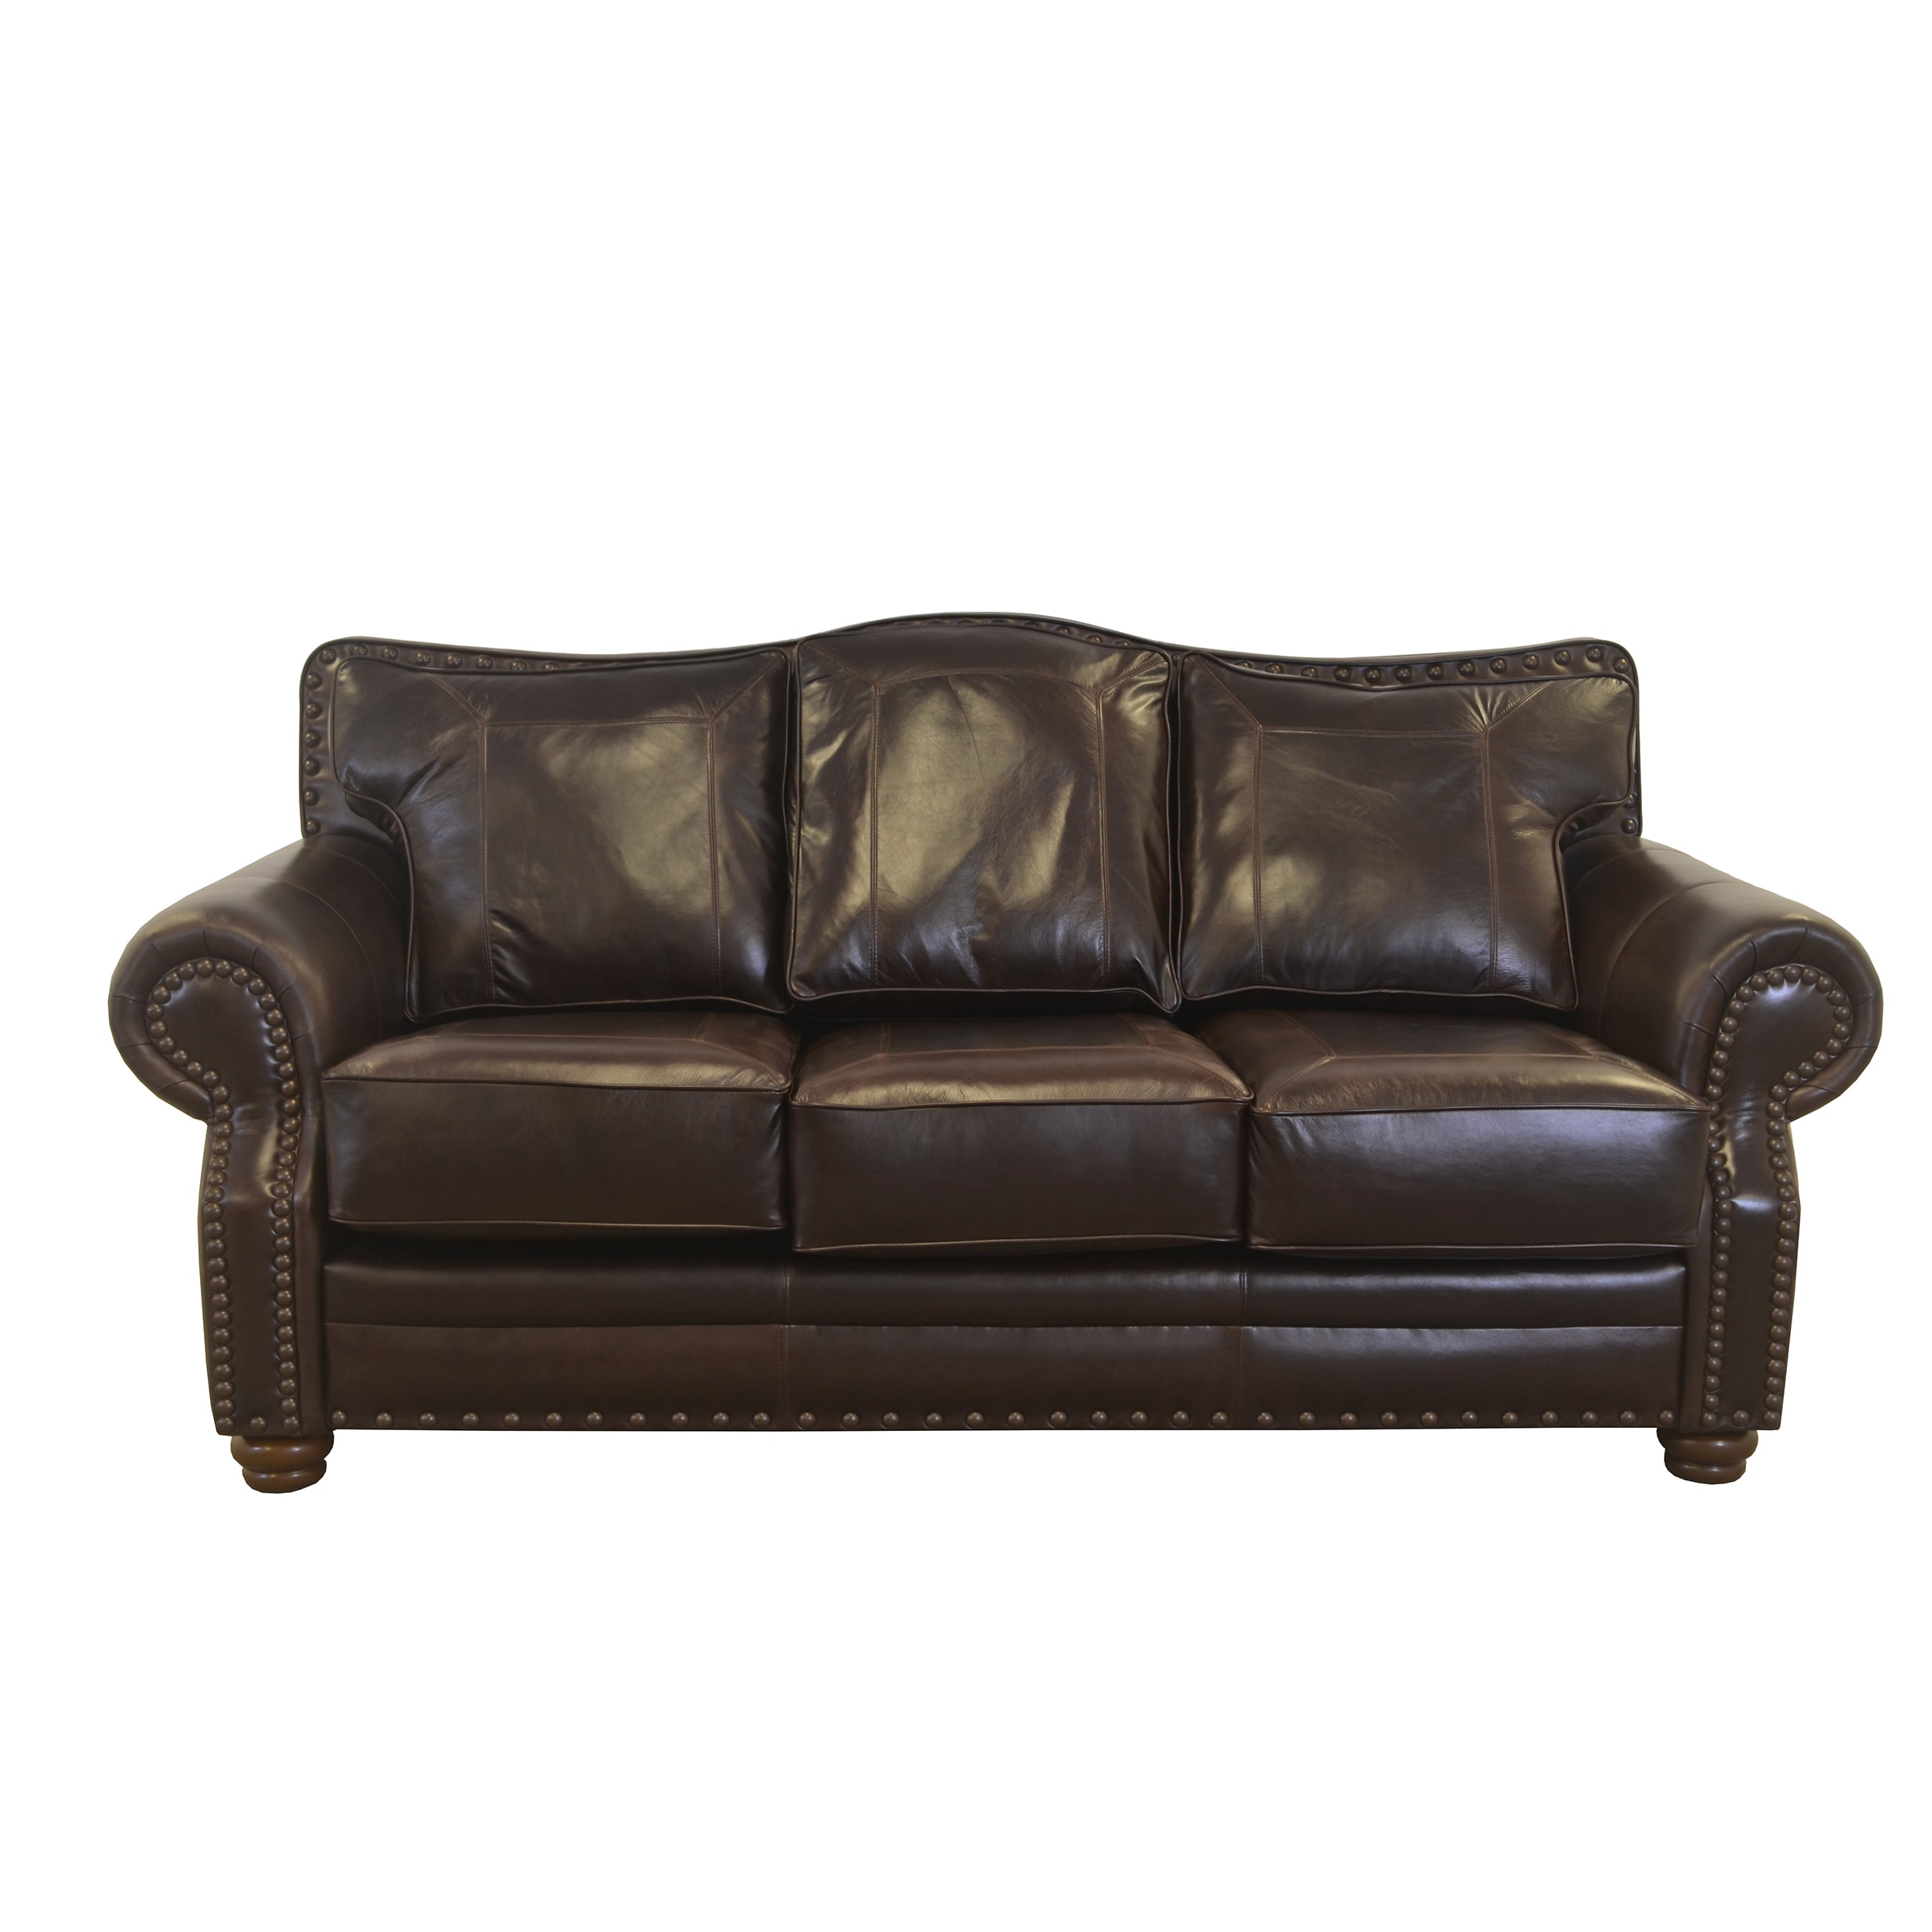 leather sofa deals free shipping 3 seater power recliner made to order amazing deal on tag by tandem arbor